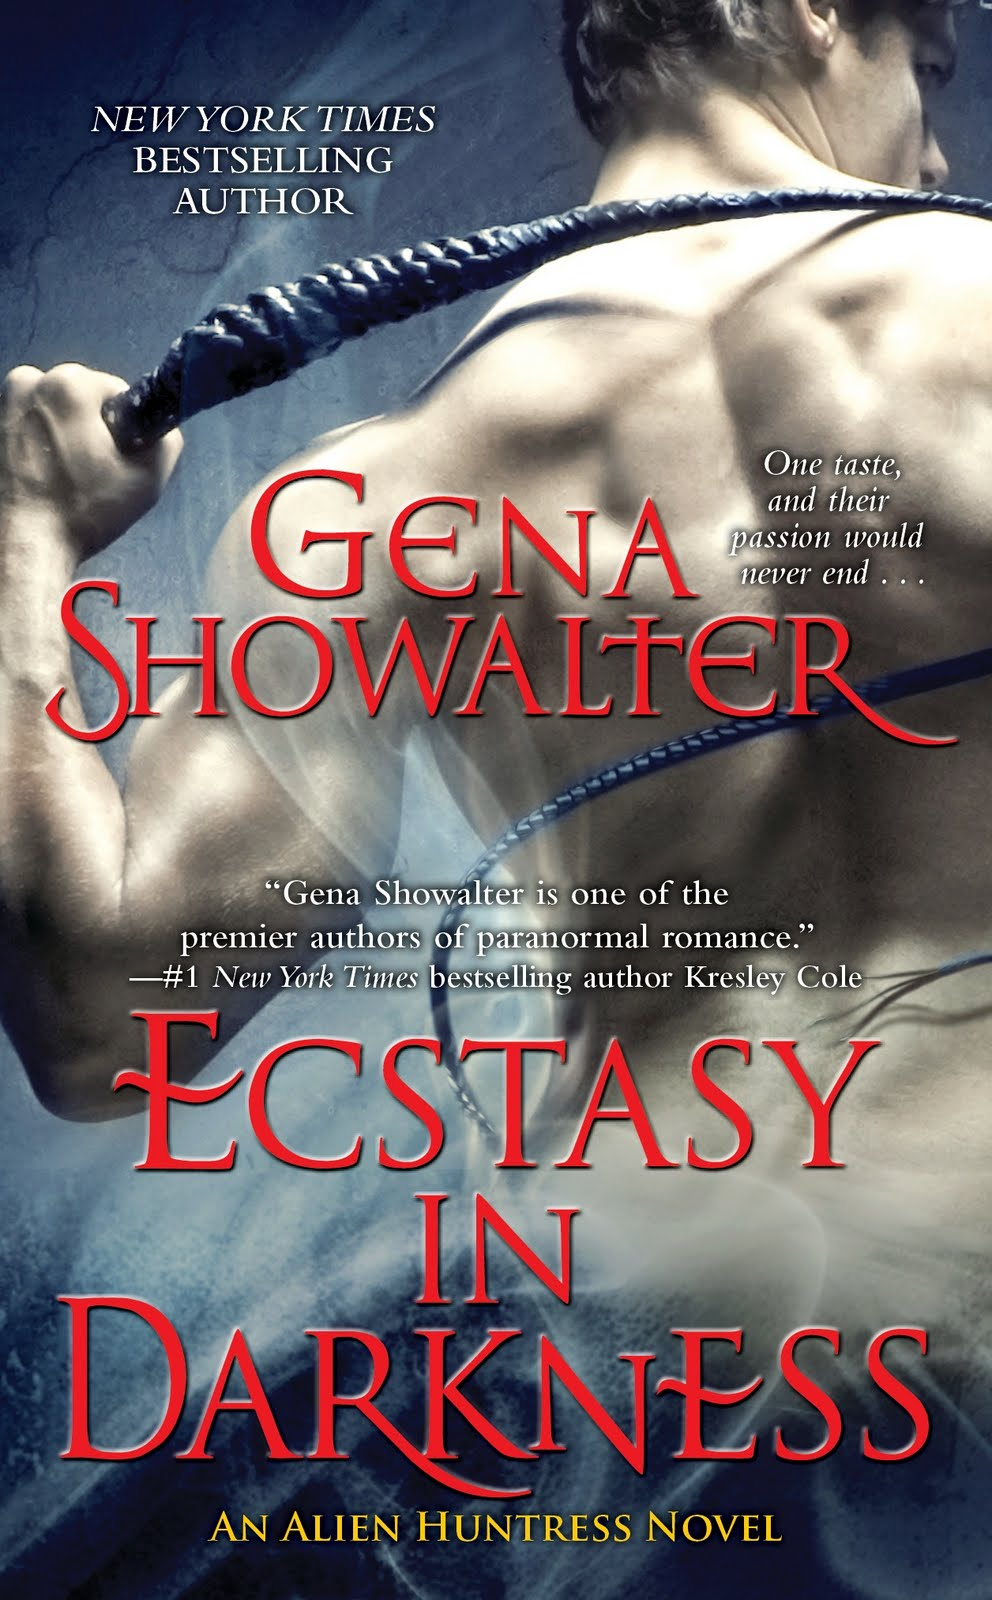 Ecstasy in Darkness by Gena Showalter